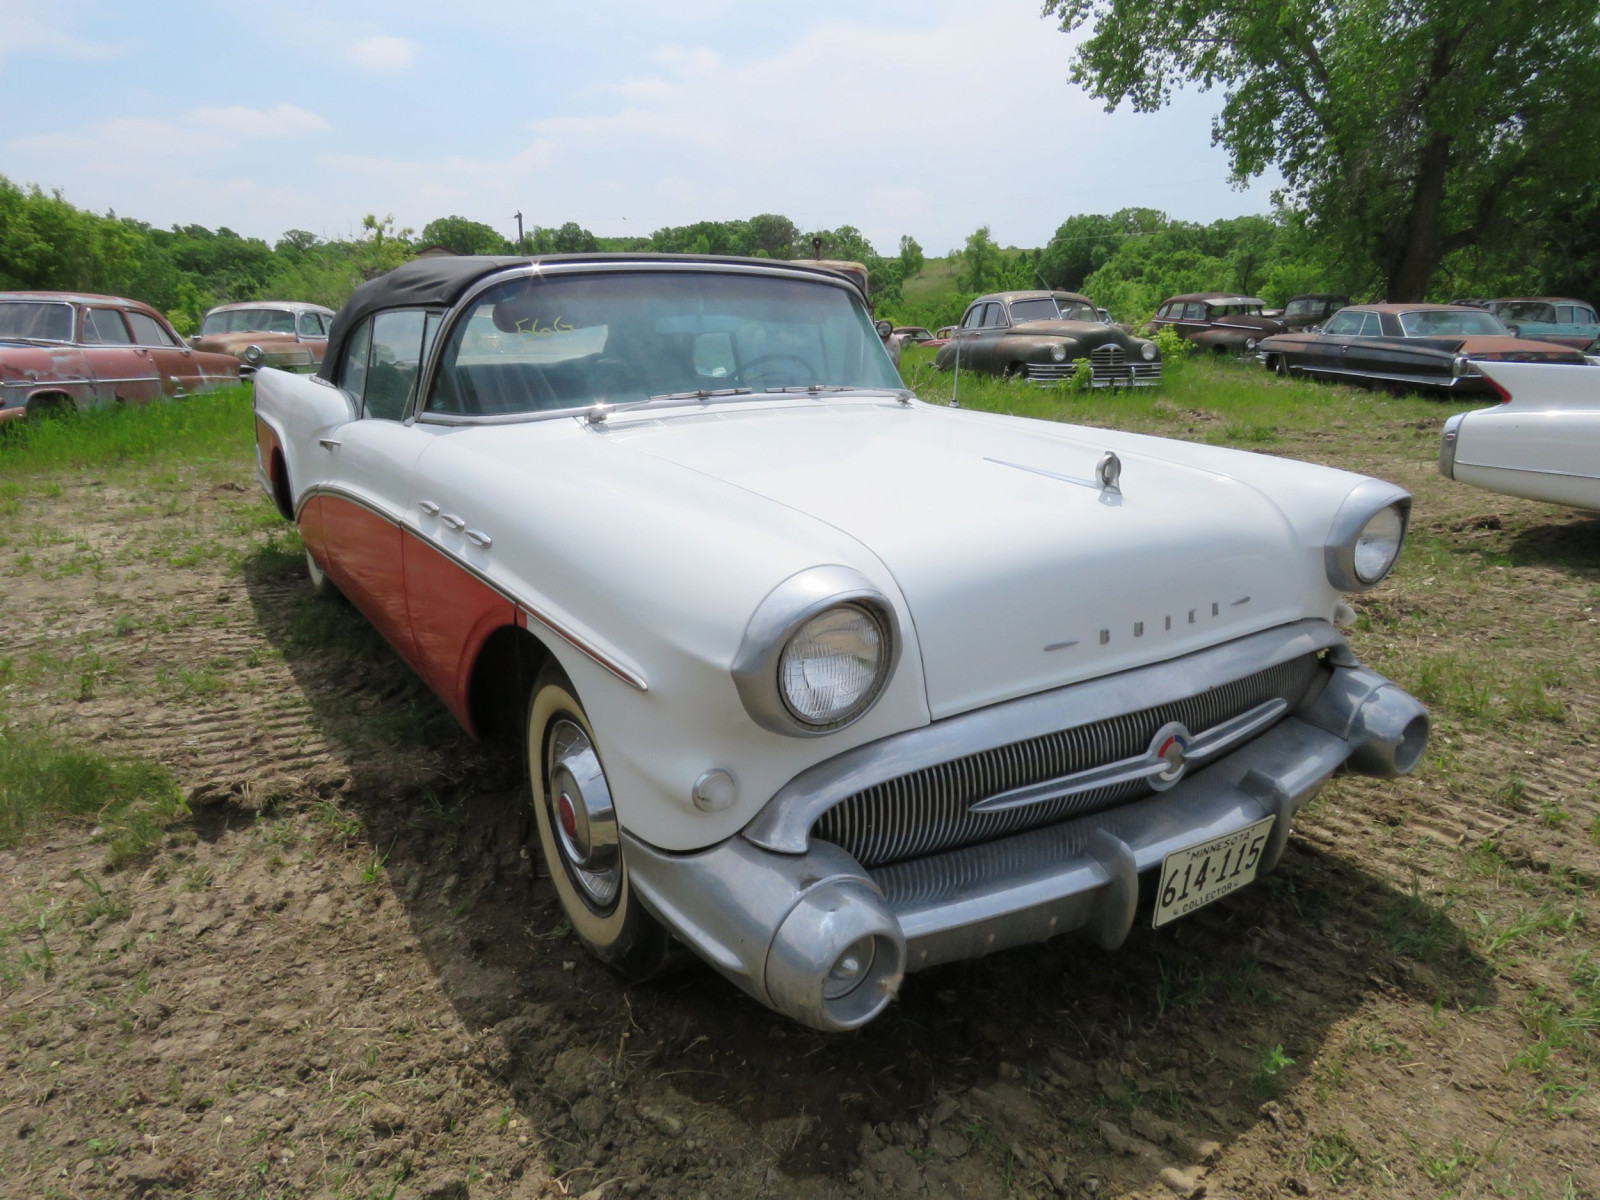 1957 Buick Special Convertible D1110085 - Image 1